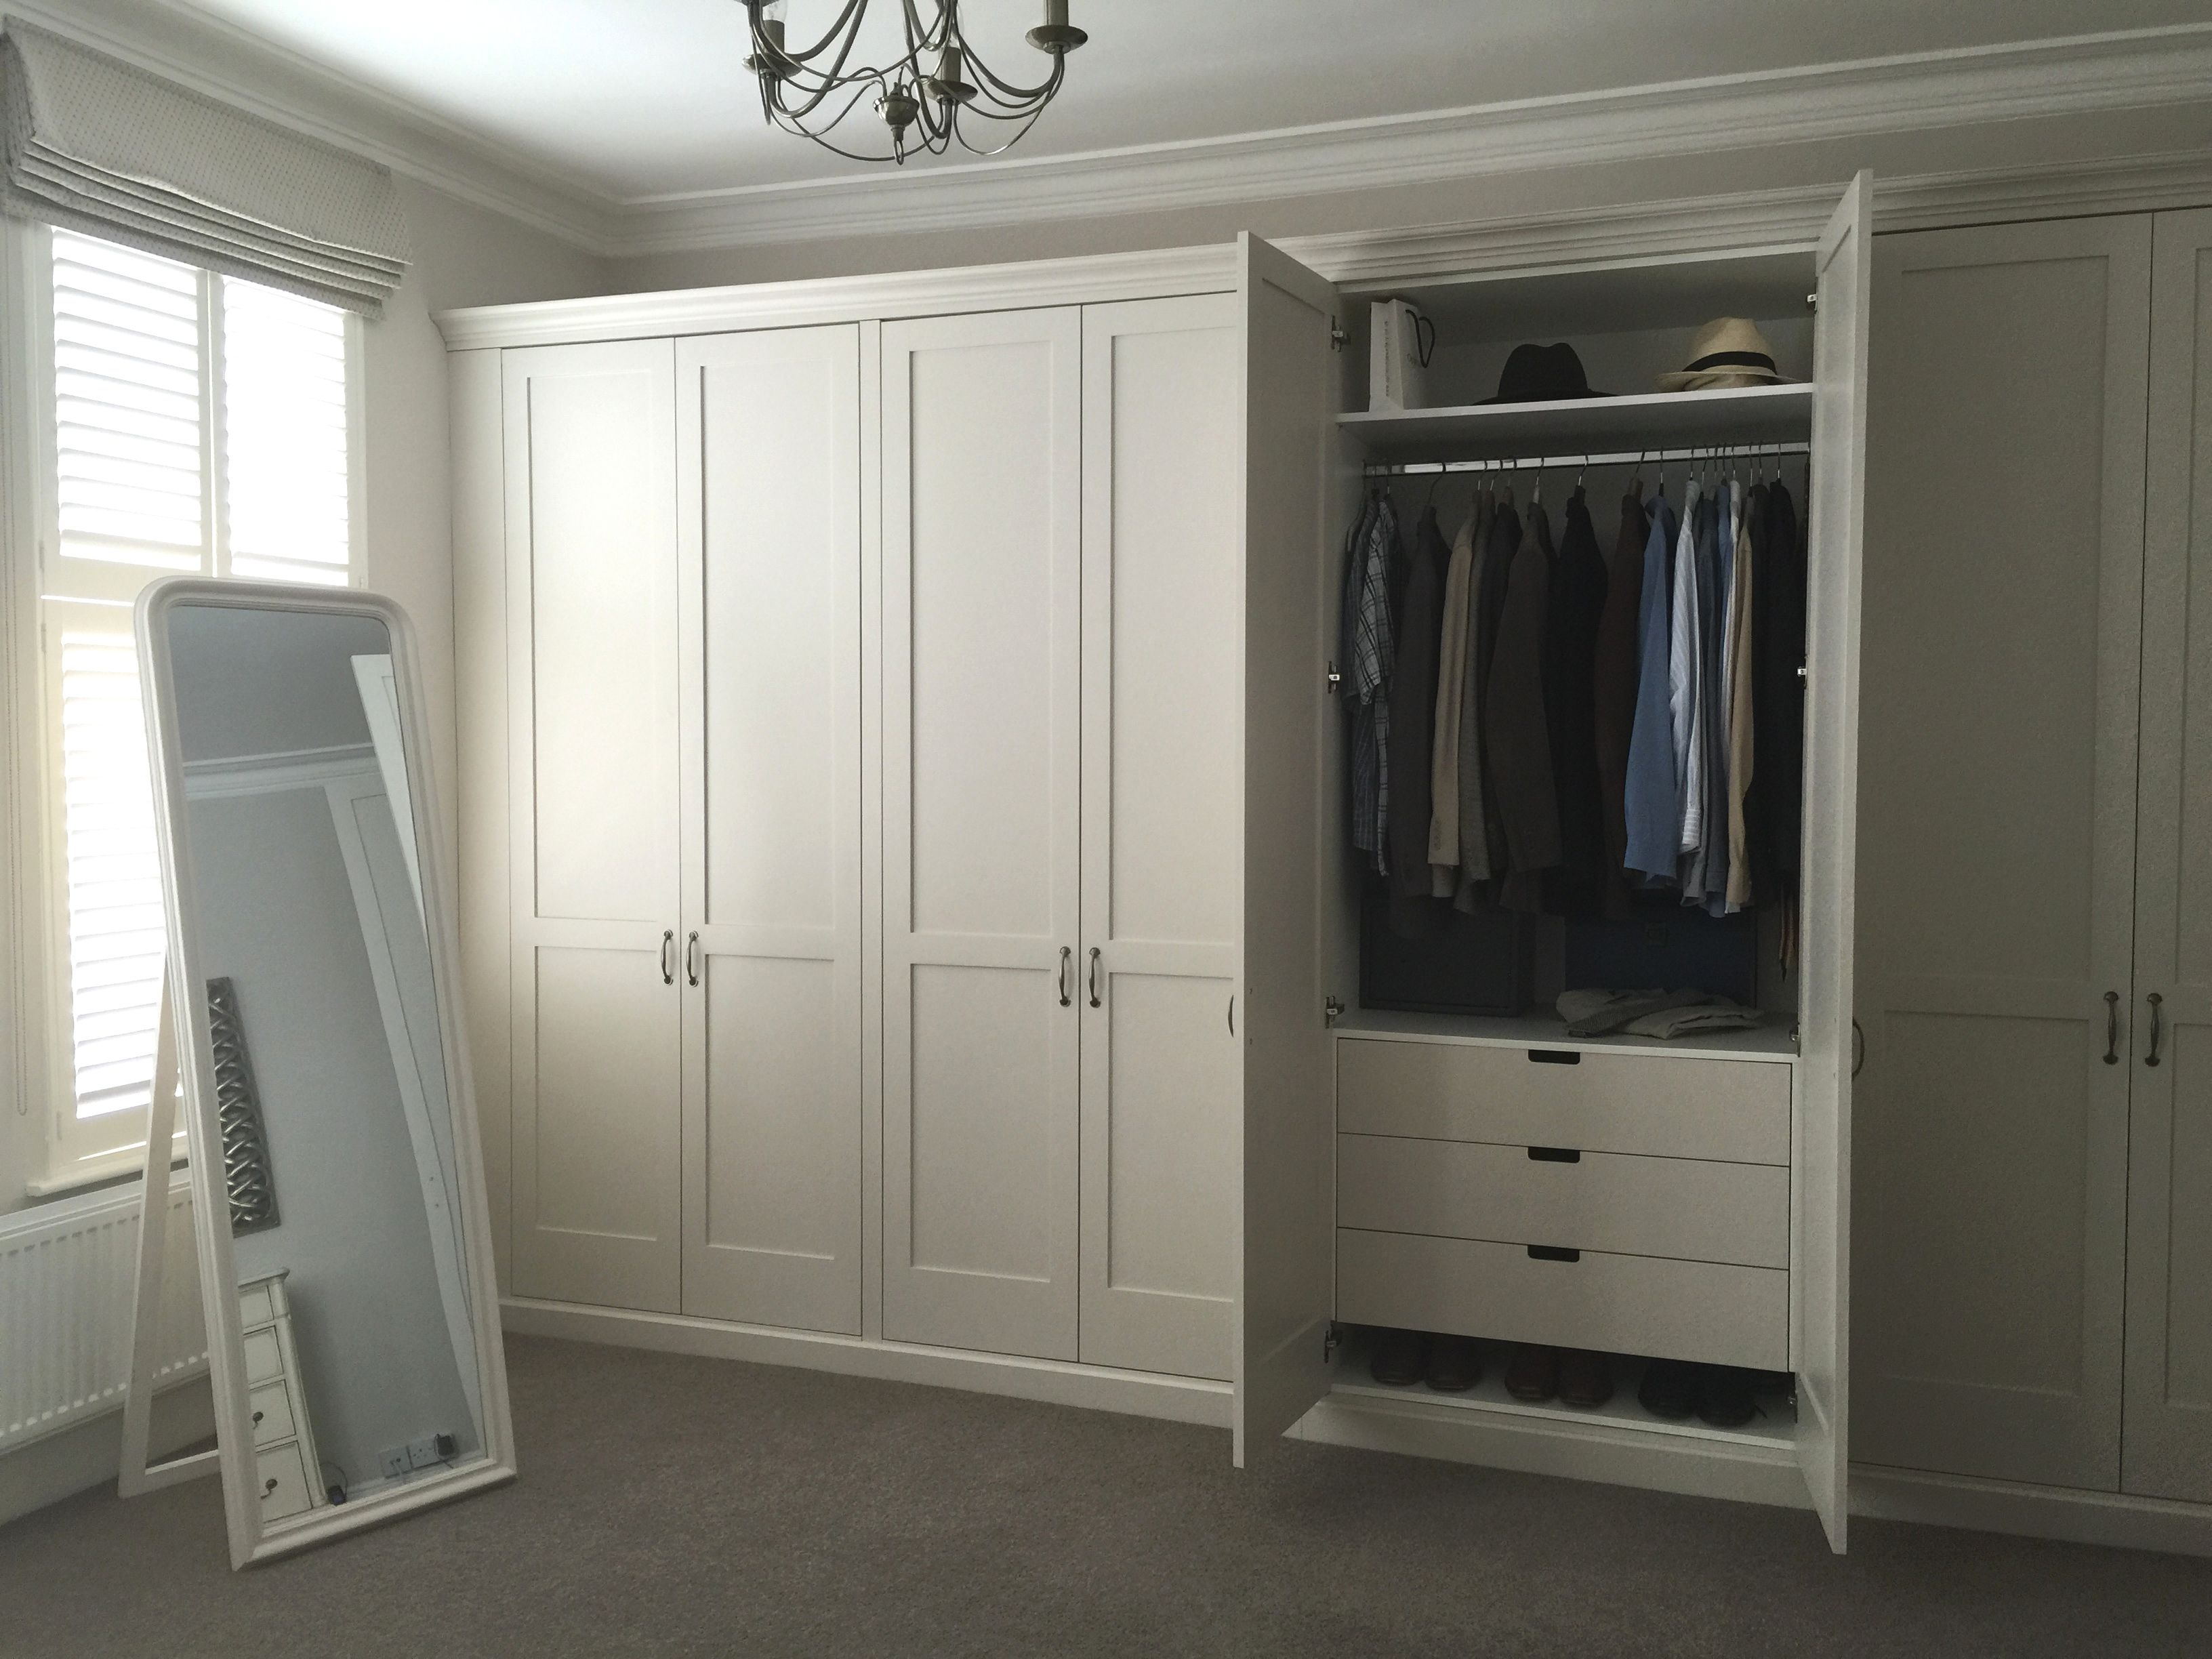 Traditional Shaker Wardrobes With Drawers Inside Shelves And Hanging Rail Detailed Cornice And Skirt Build A Closet Wardrobe Closet Storage Wardrobe Drawers